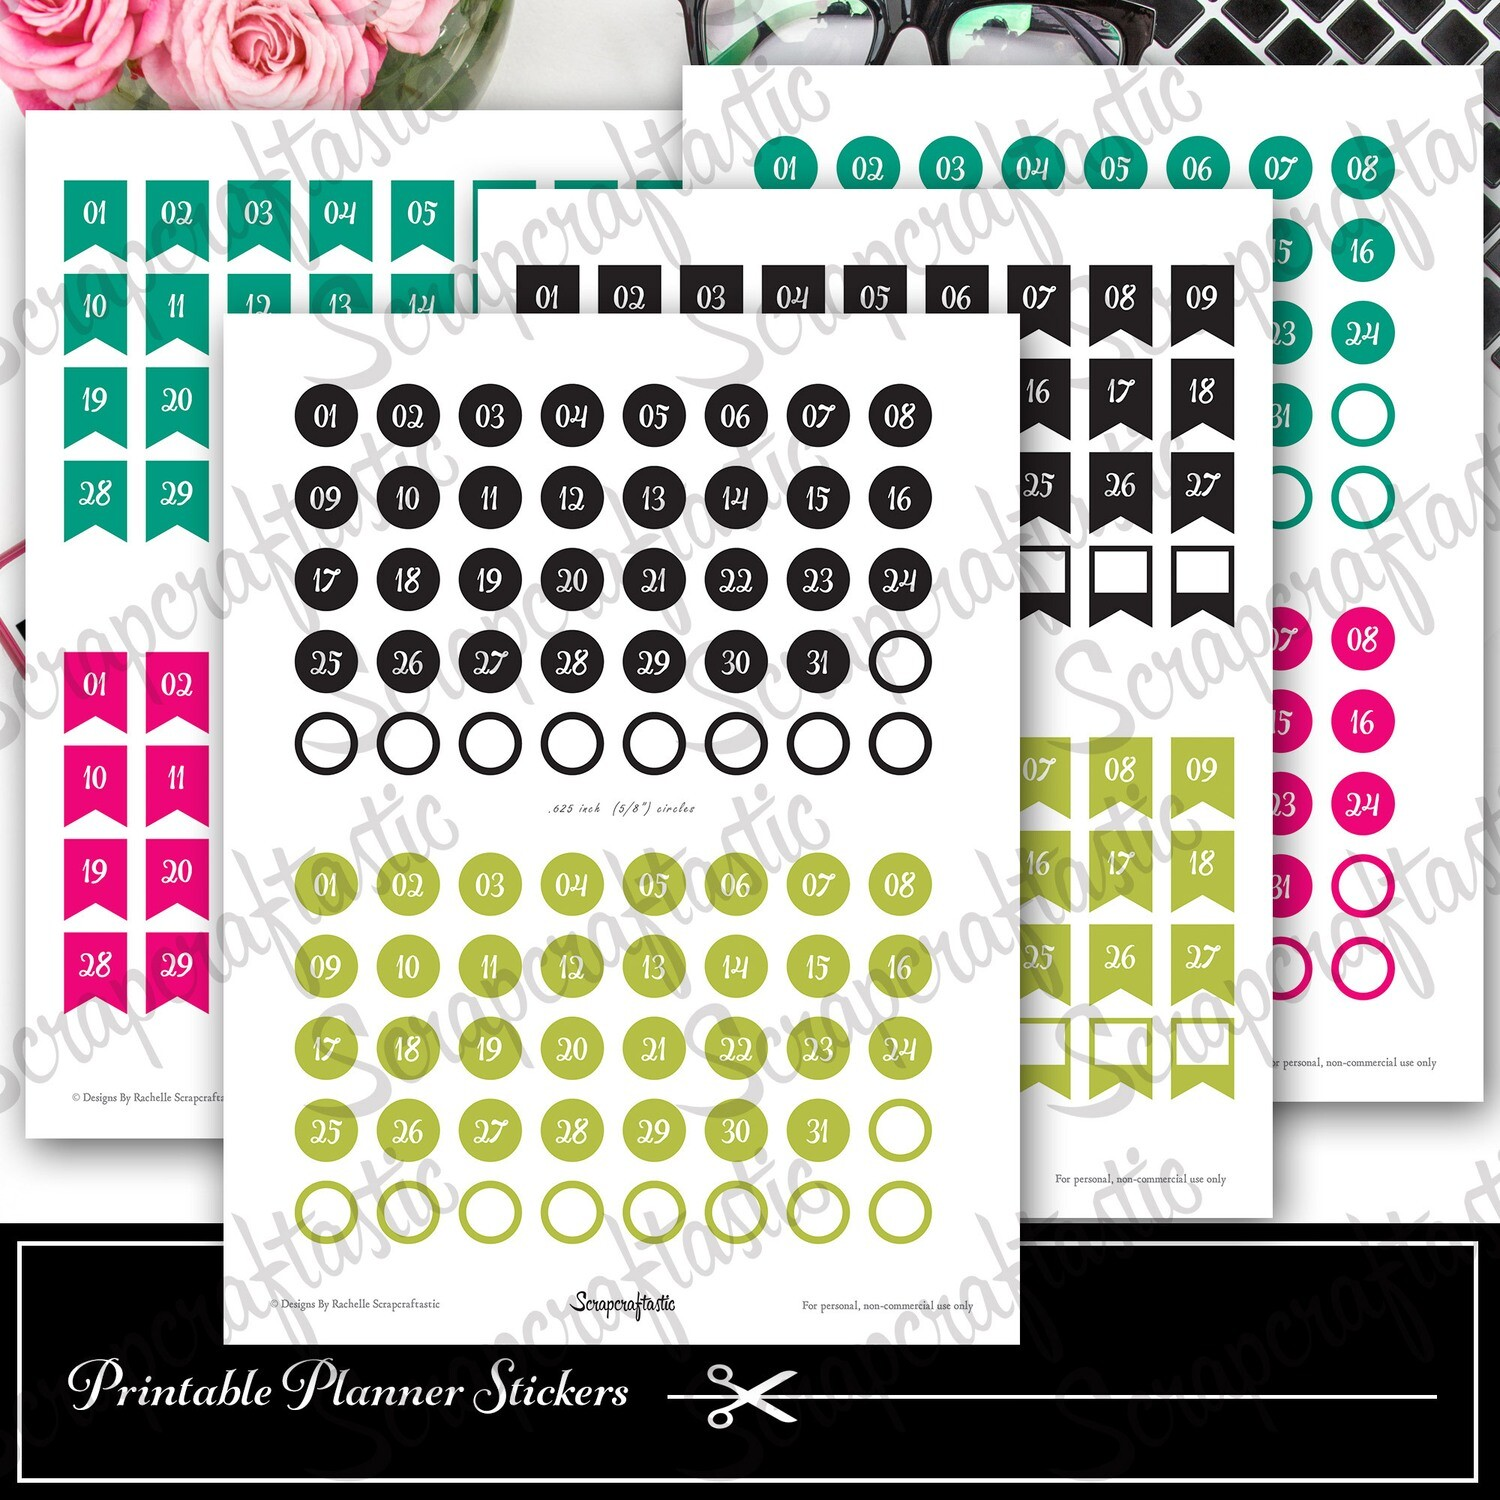 photo regarding Binder Inserts Printable named Planner Qualified Do it yourself Calendar, Listing and Every month Situation Numbered Printable Planner Stickers for paper planners, binders, inserts